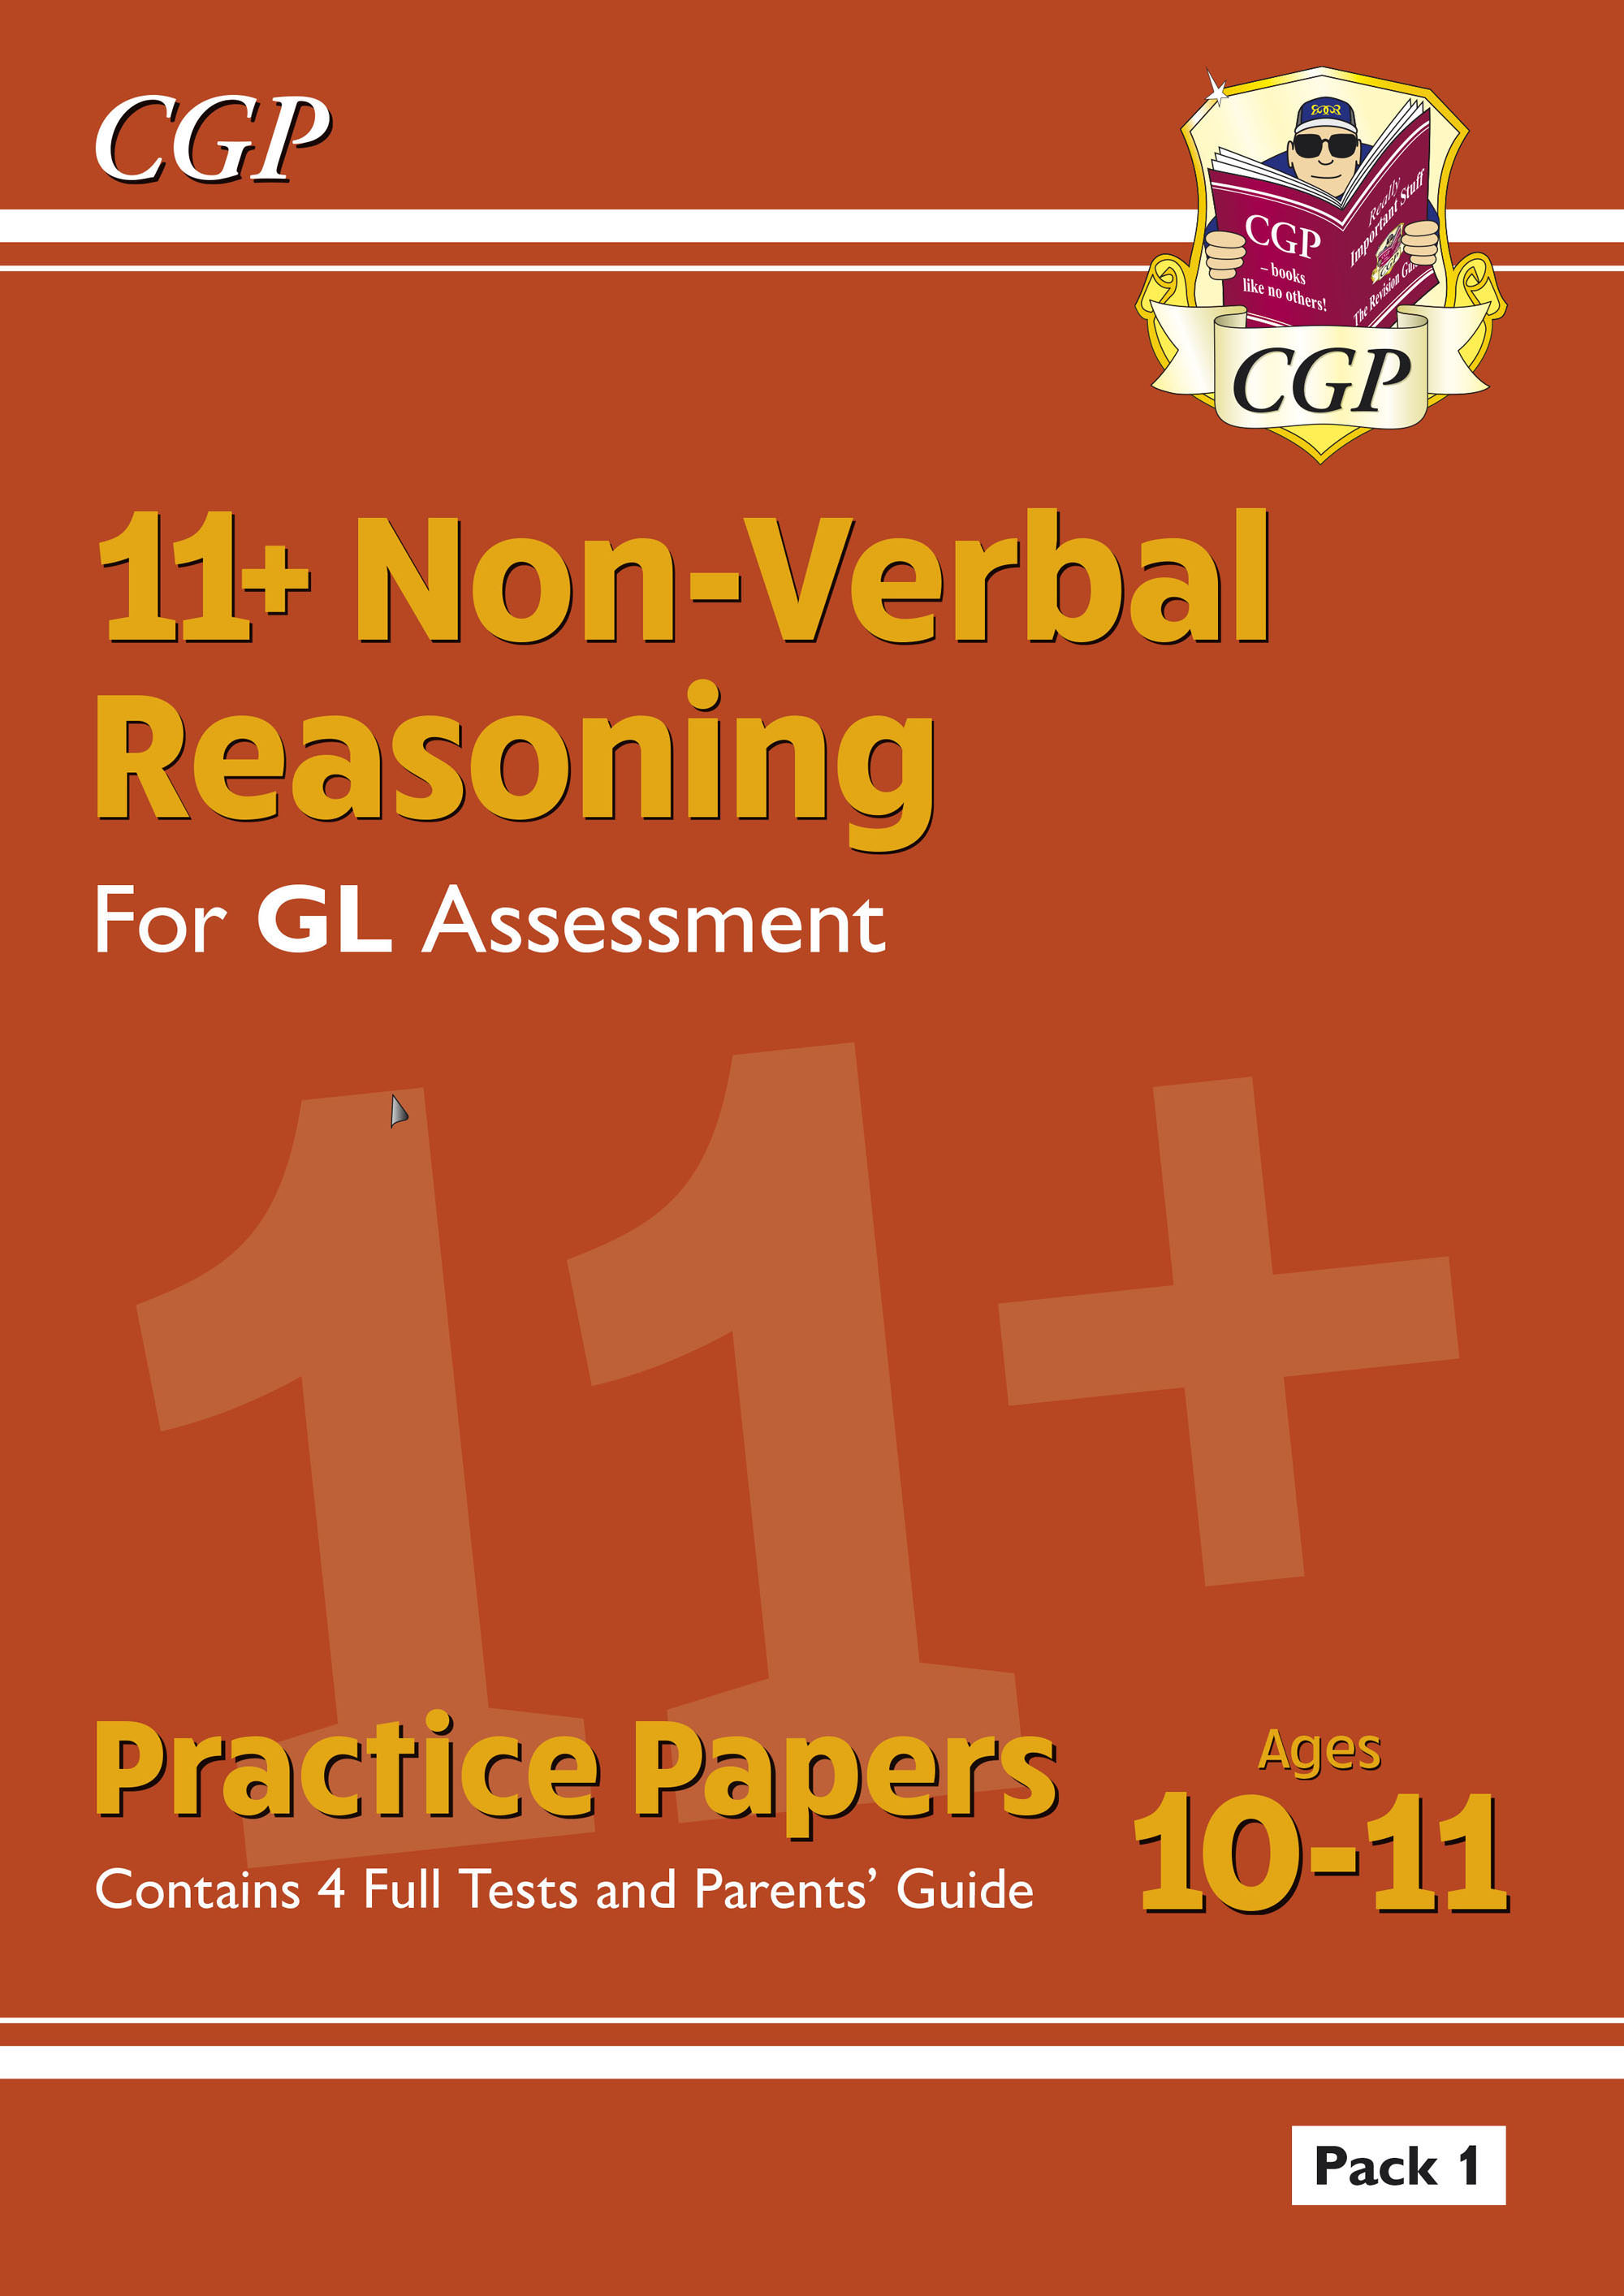 NHTE2DK - New 11+ GL Non-Verbal Reasoning Practice Papers: Pack 1 (with Parents' Guide)